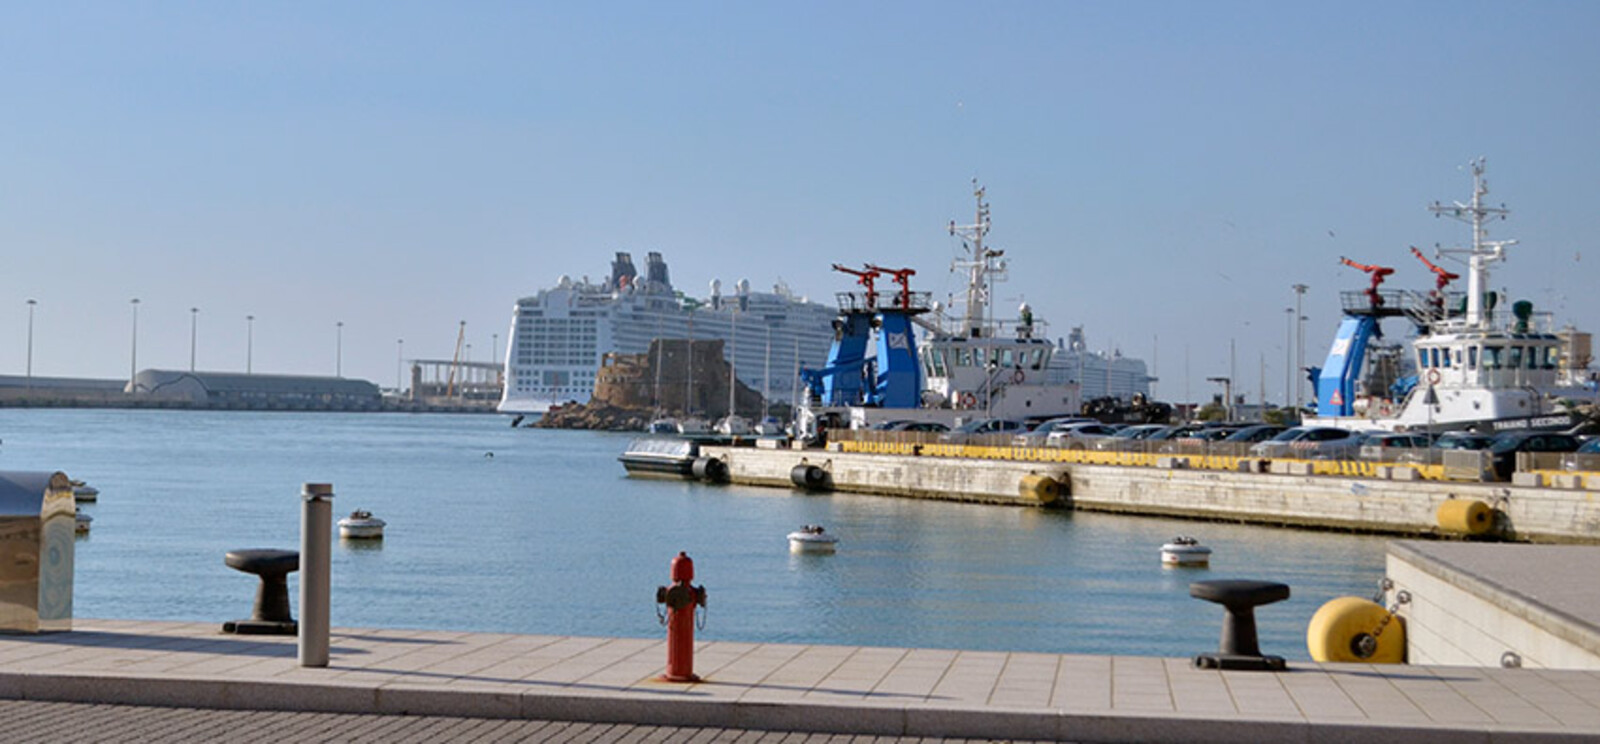 How to get from civitavecchia port to rome all the possible solutions cabroma - Getting from civitavecchia port to rome ...